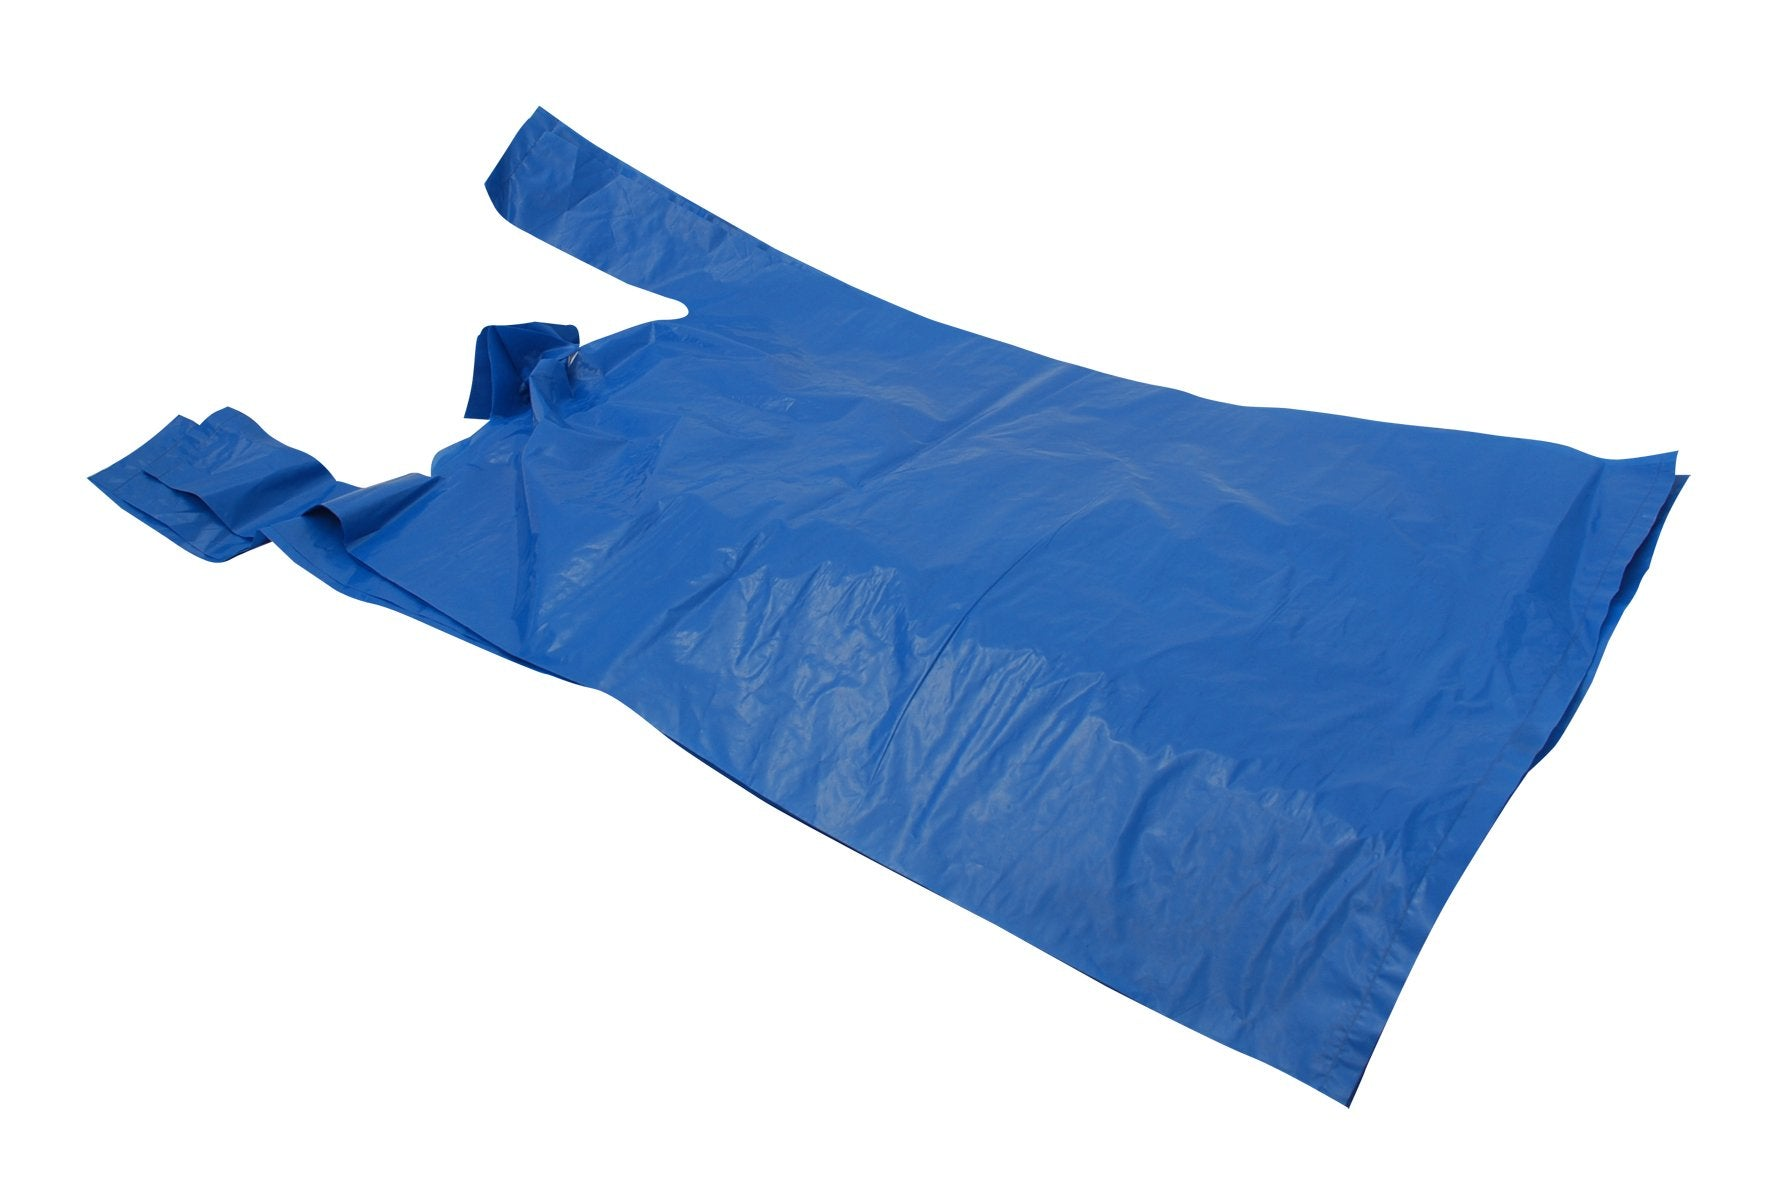 12 x 18 x 24 23mu Blue Recycled Vest Plastic Carrier Bags (Falcon 2) - Gafbros